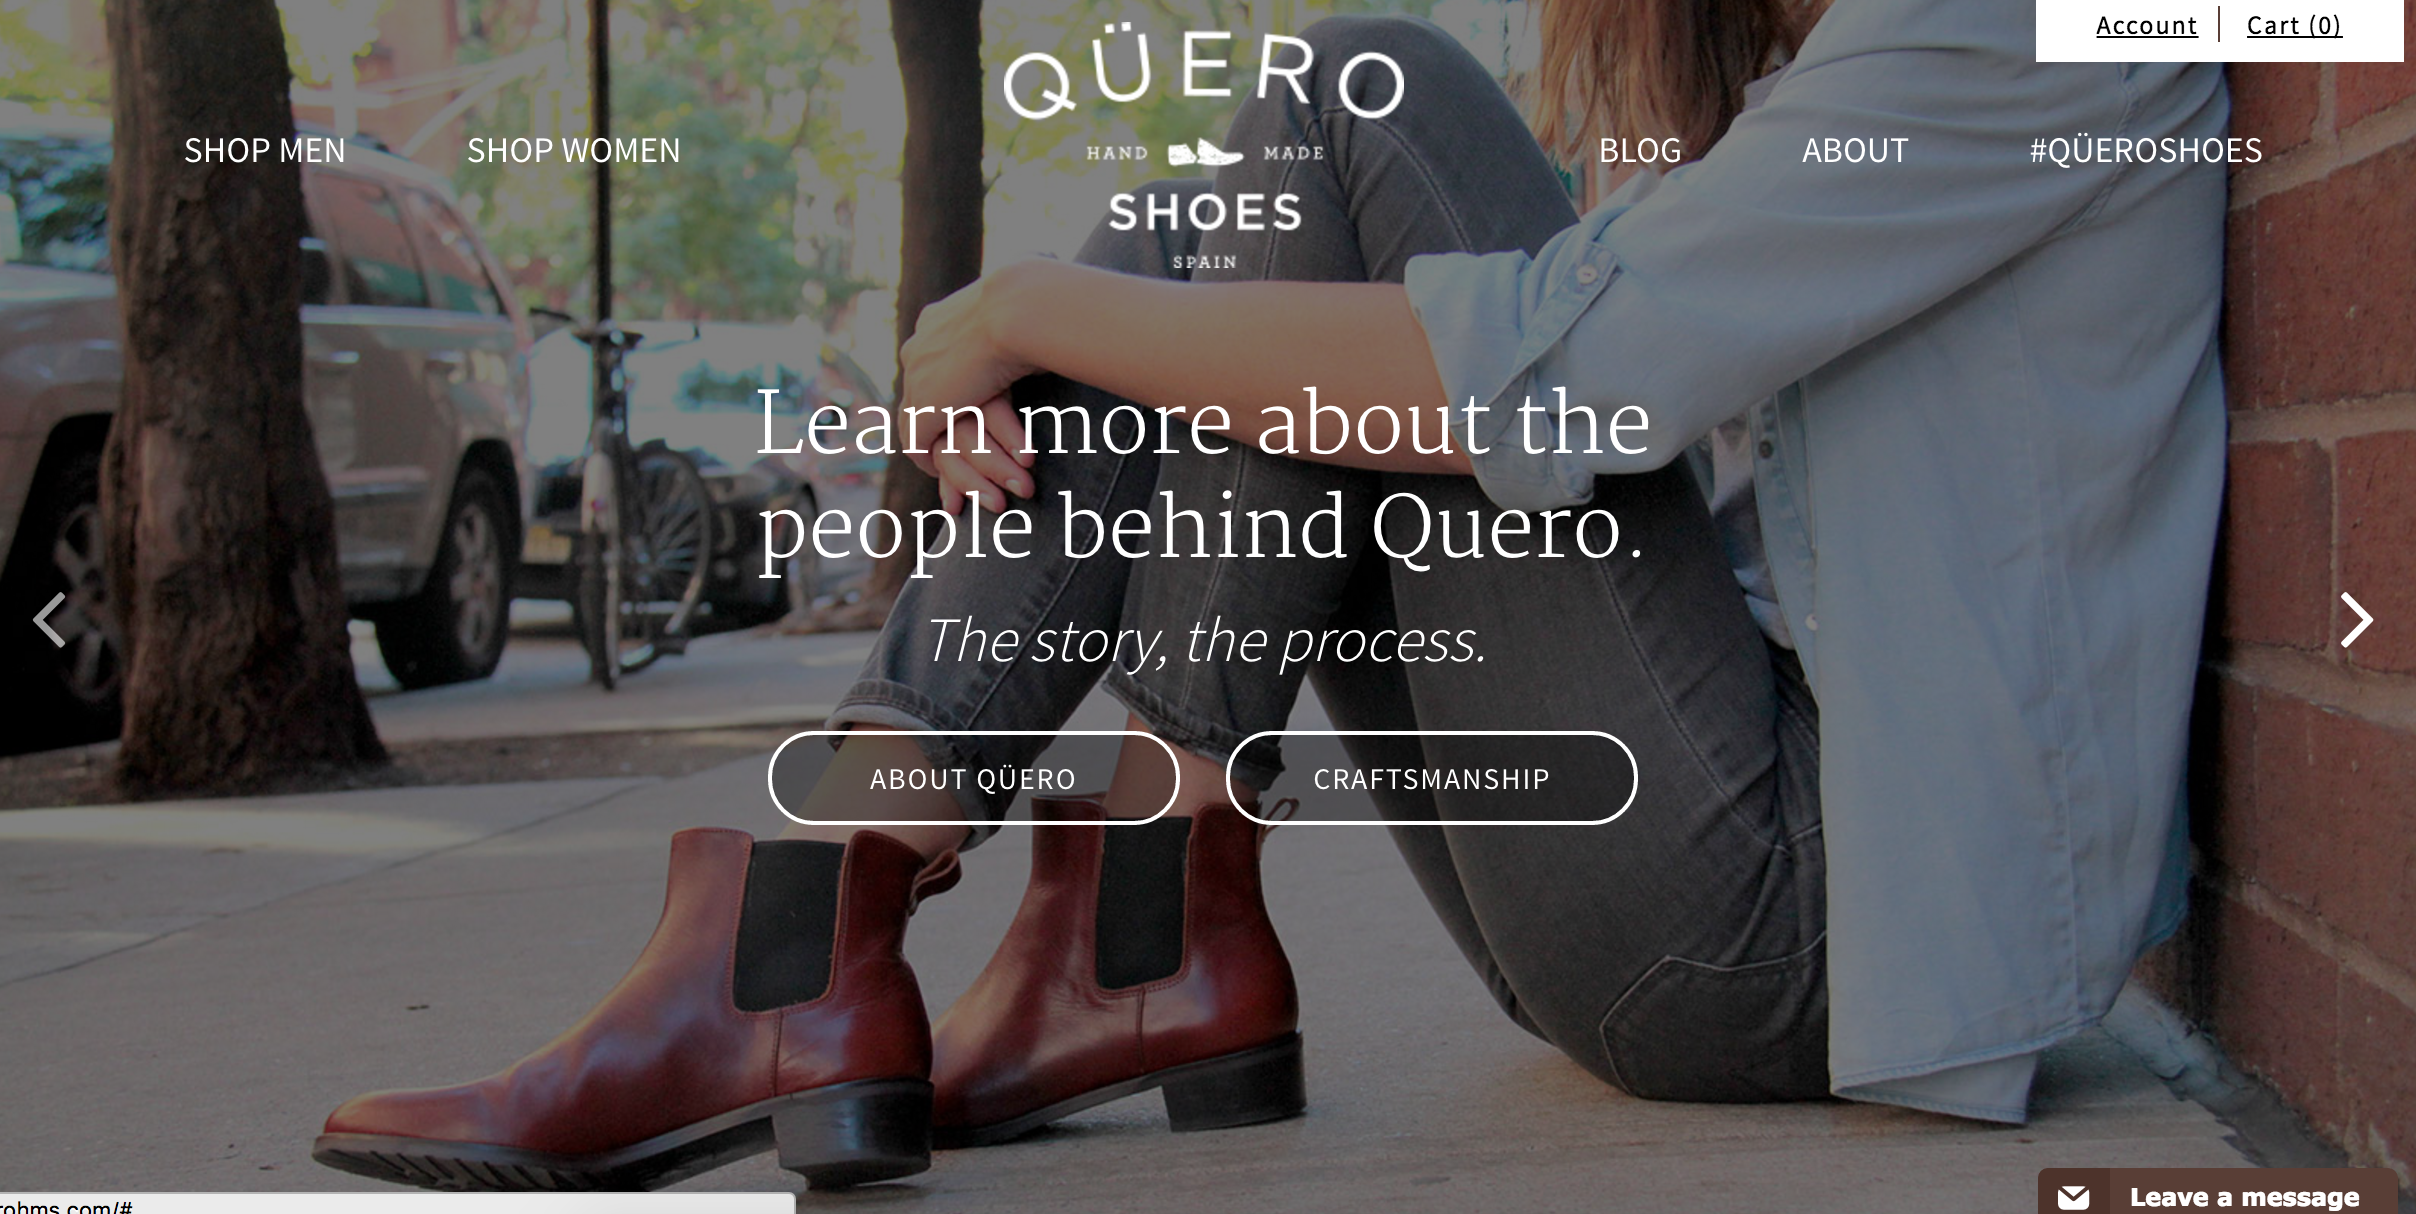 These handmade shoes are true to life and on display the instant you visit Qüero's store.